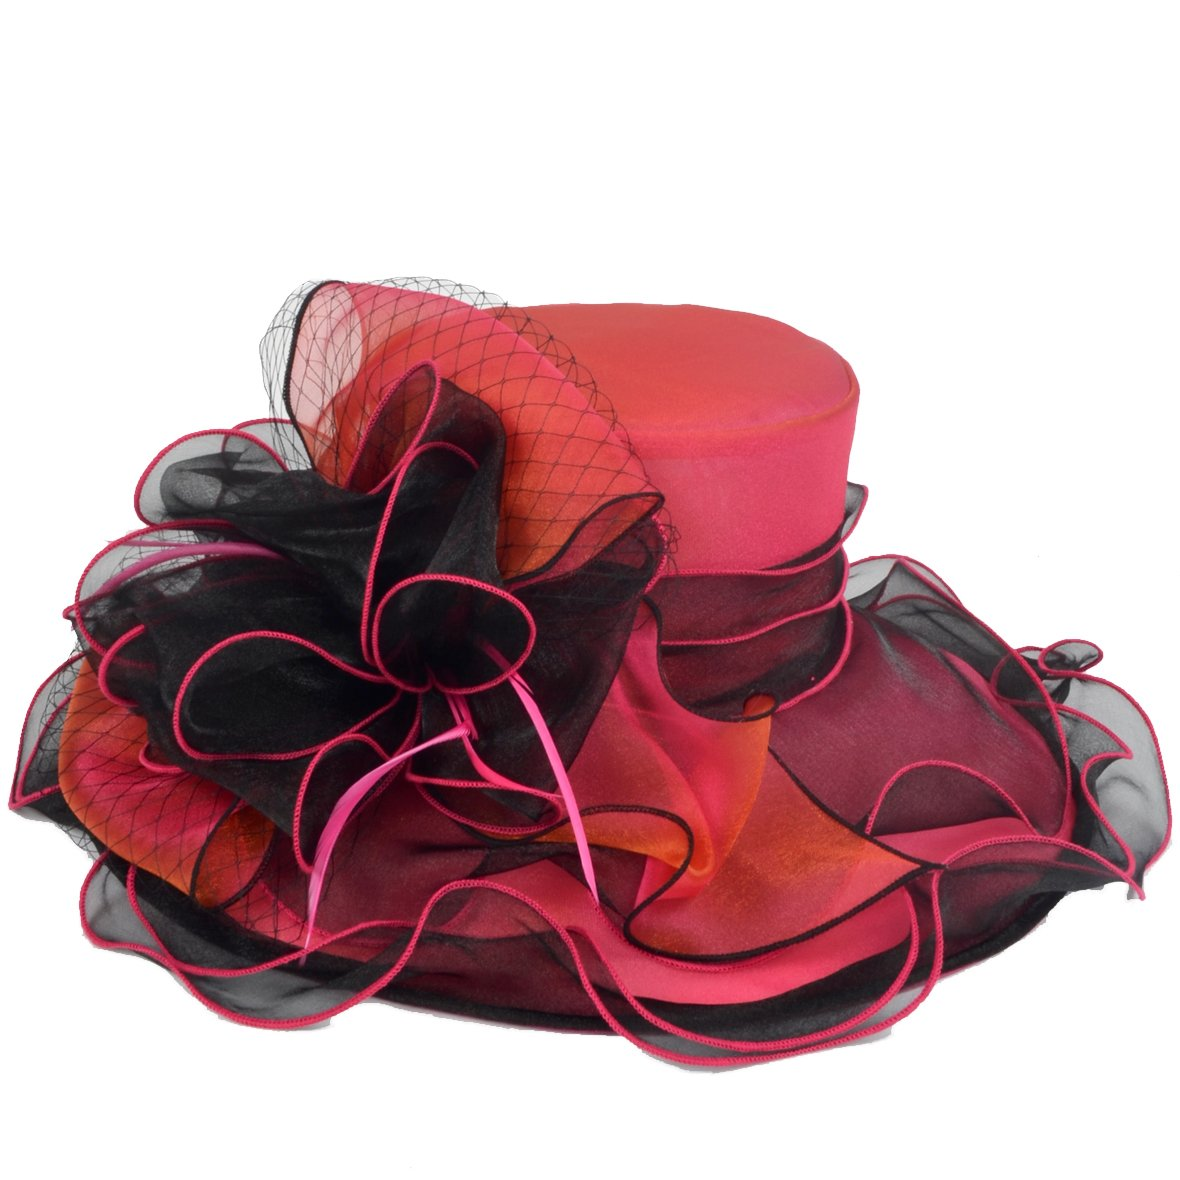 JESSE · RENA Women's Church Derby Dress Fascinator Bridal Cap British Tea Party Wedding Hat (Two-Tone-Hot Pink) by JESSE · RENA (Image #2)